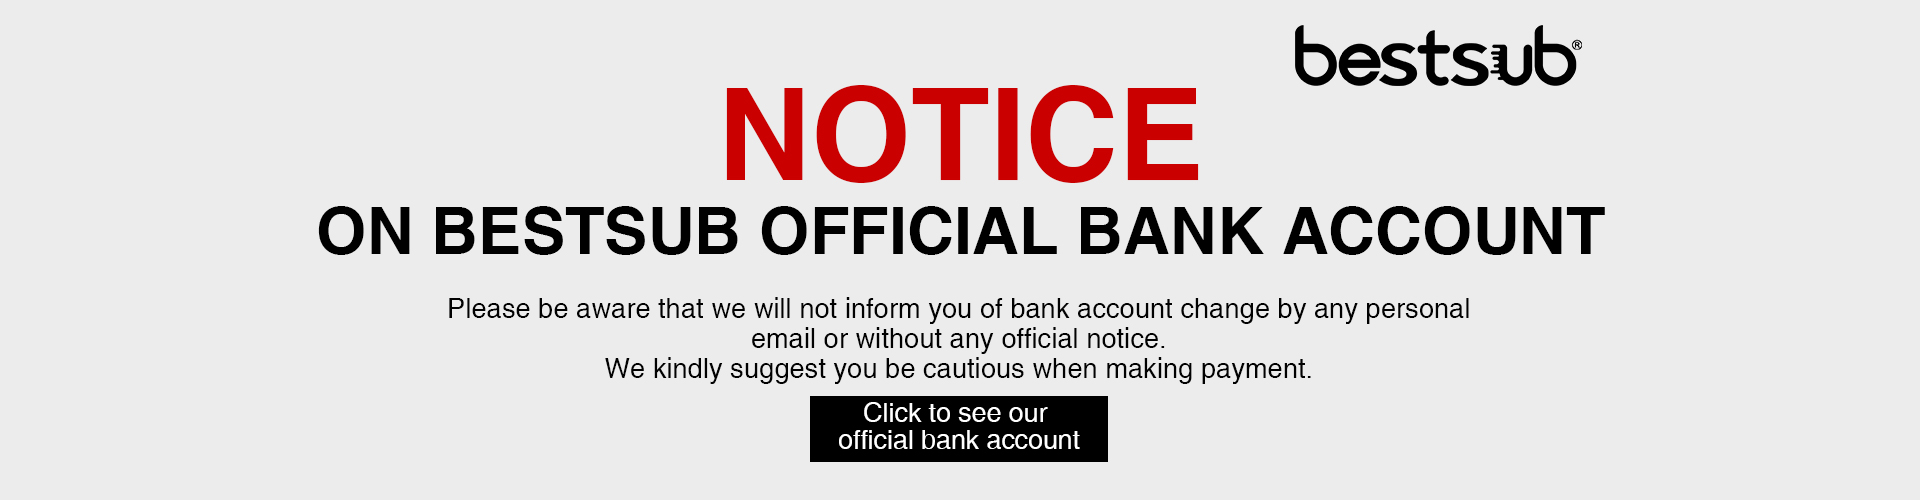 2018-10-19_Notice_on_the_Unchanged_Bank_Account_new_web